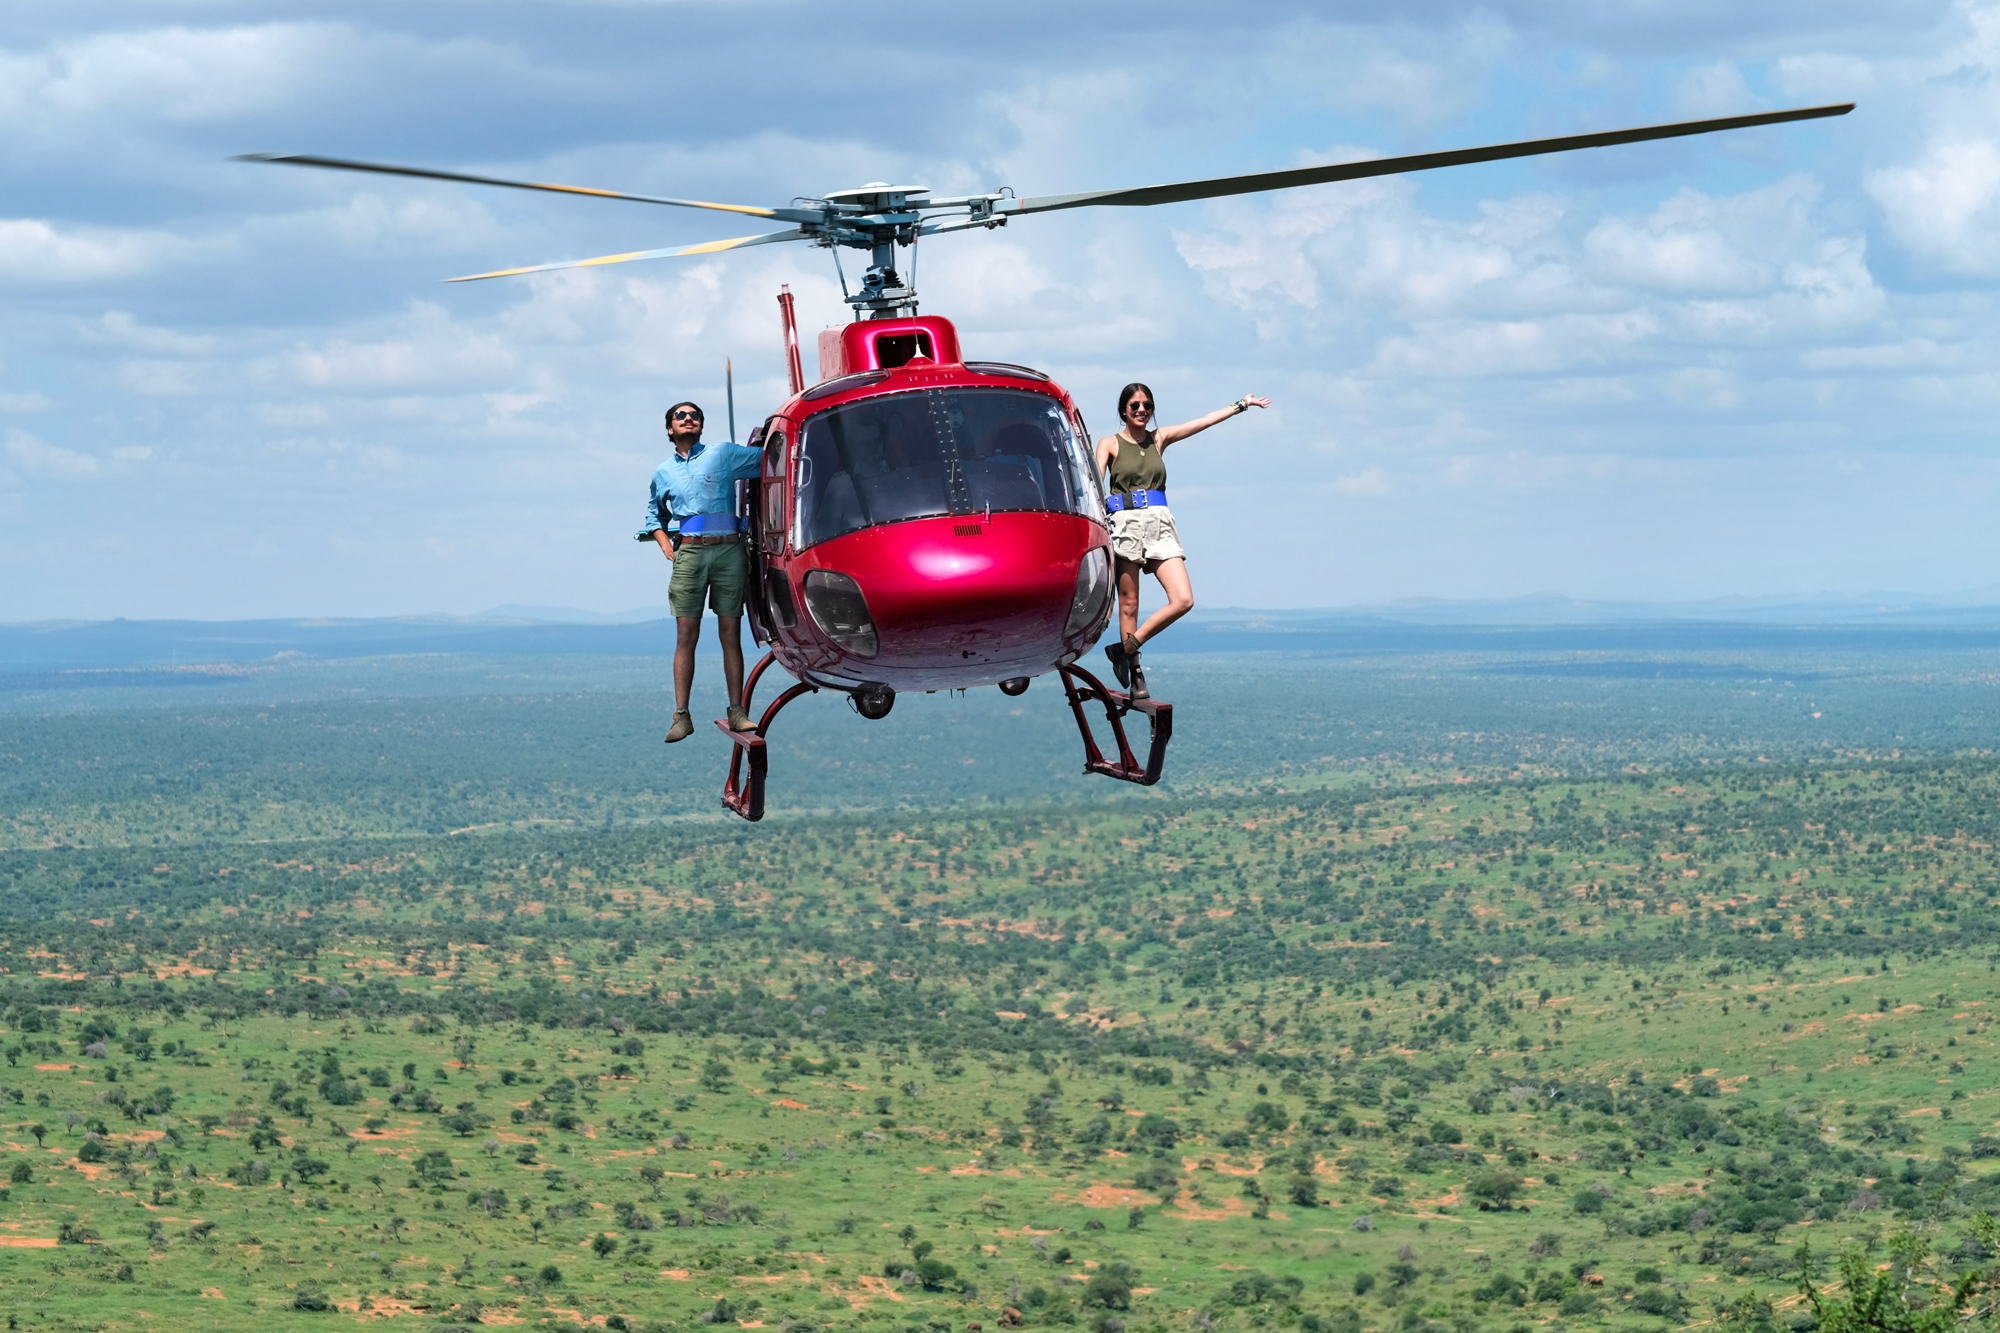 The Pintos on a flying helicopter